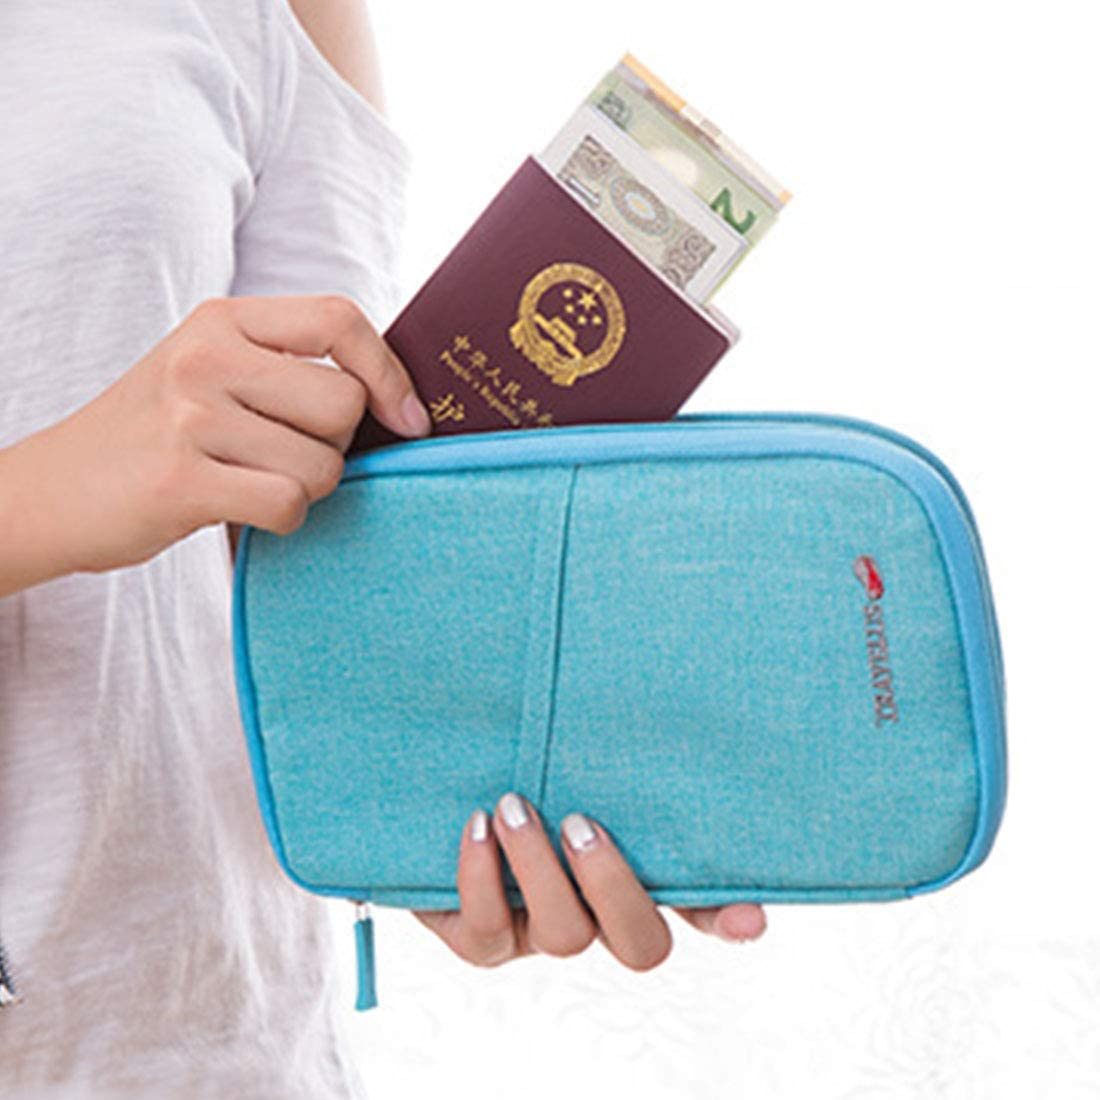 Travel Wallet Large Capacity Double Side Portable Passport Holder Blue